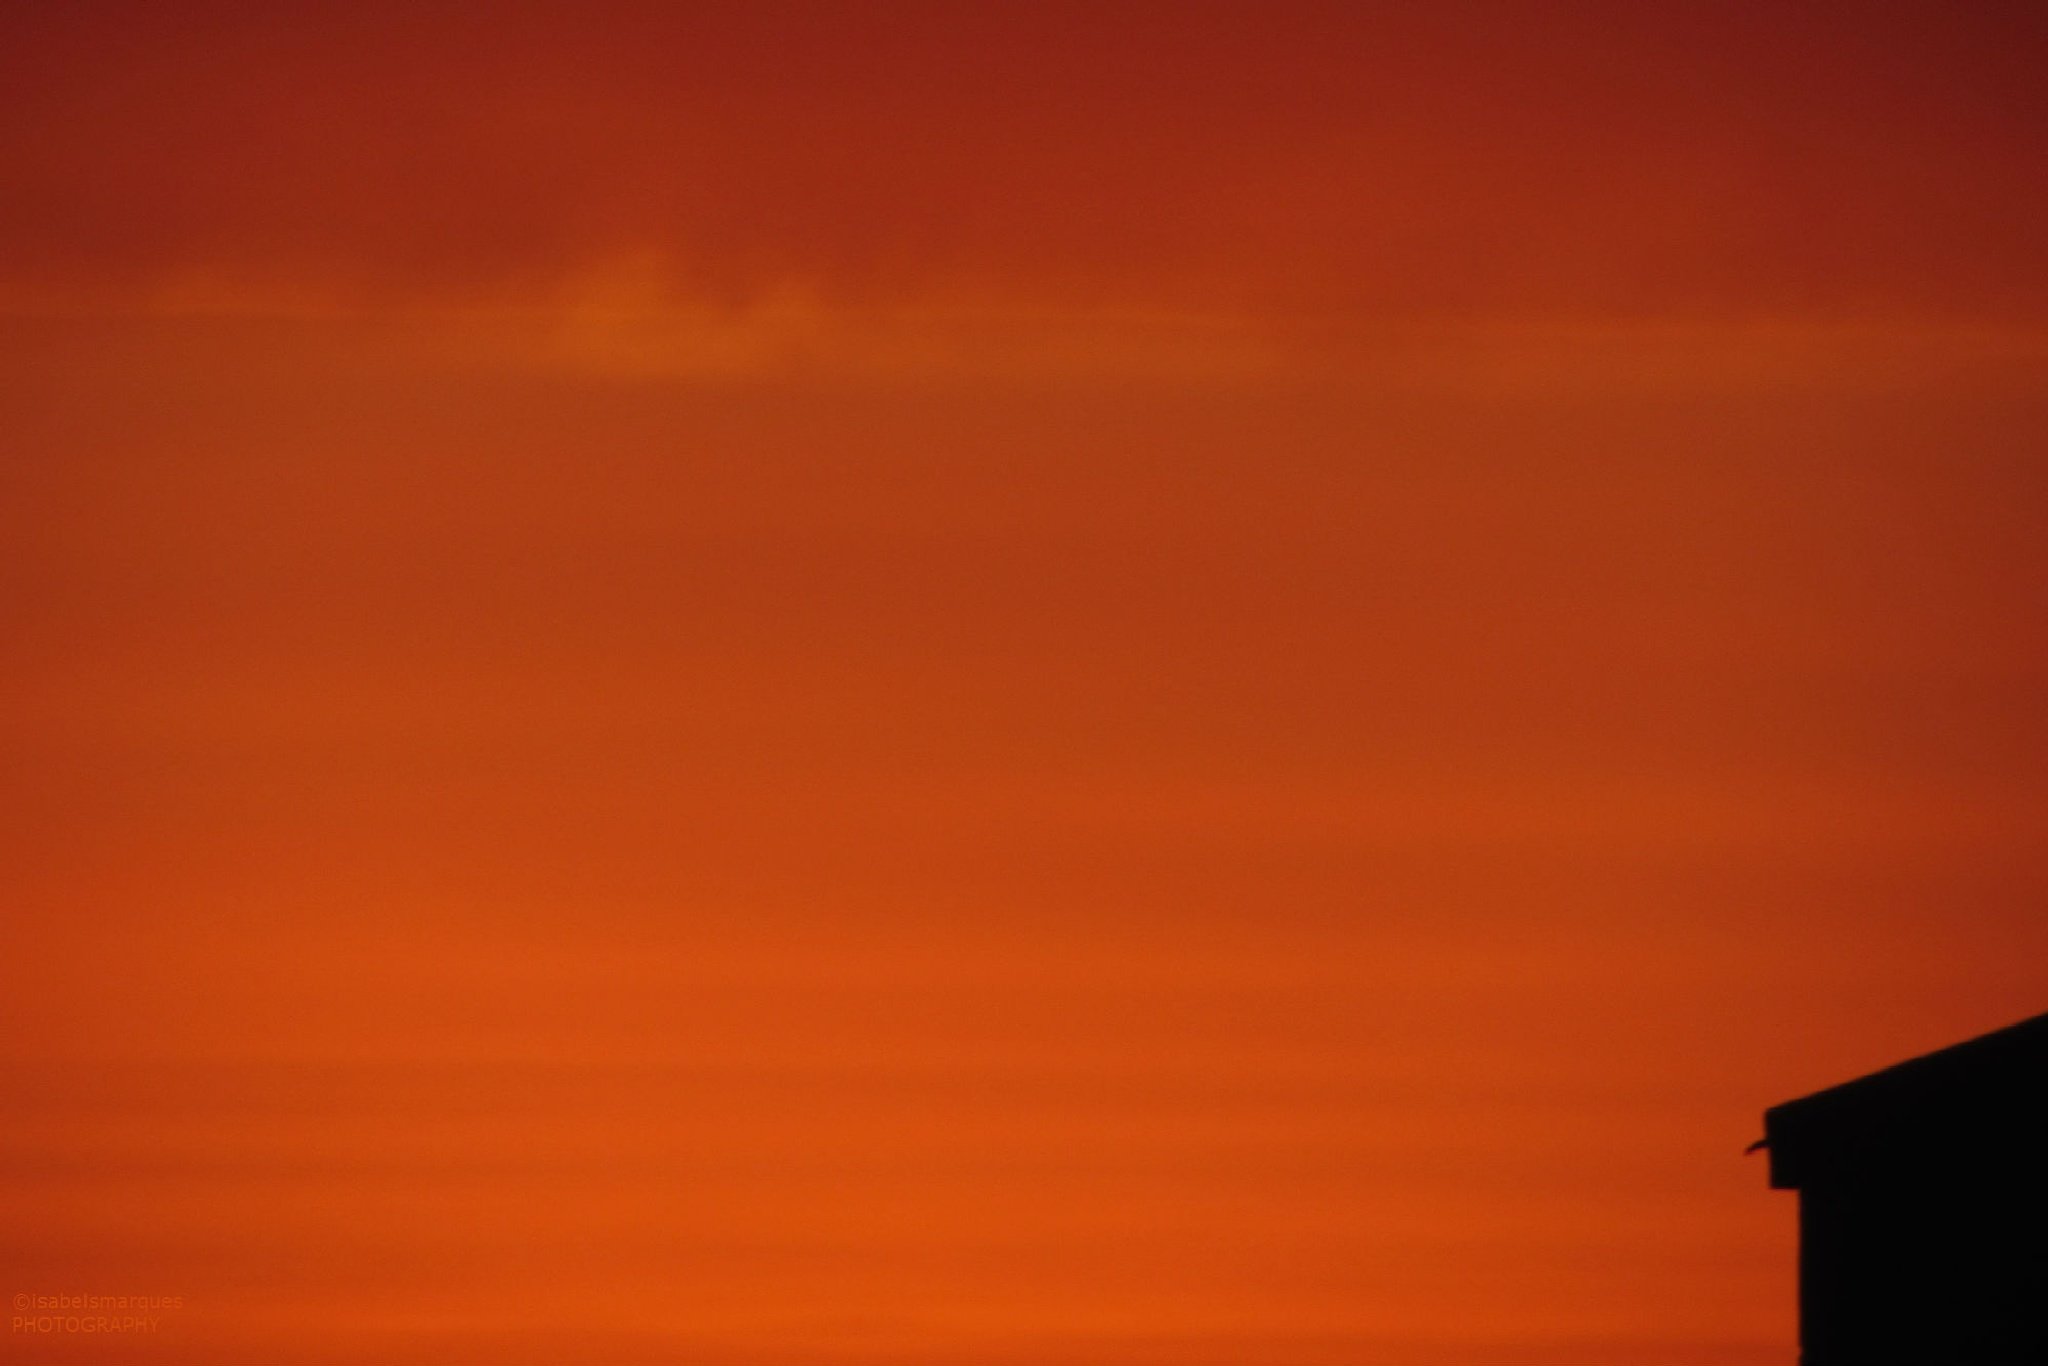 Sunset by isabelsmarques